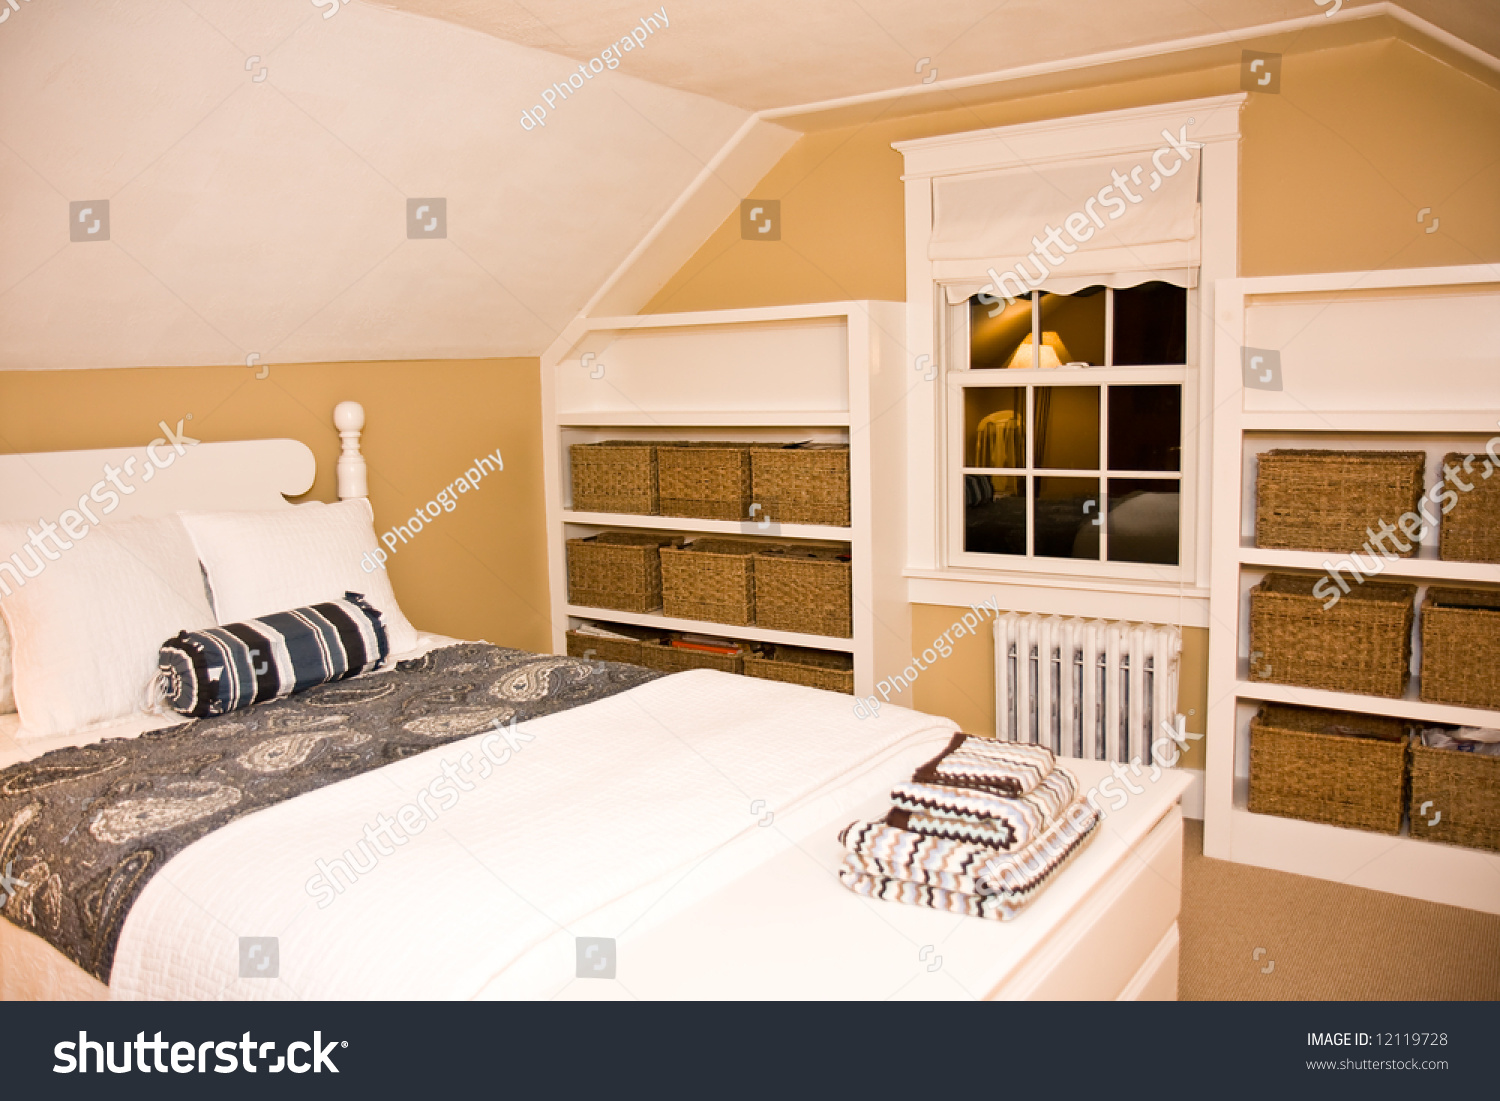 Cozy New England style bedroom Preview  Save to a lightbox. Cozy New England Style Bedroom Stock Photo 12119728   Shutterstock